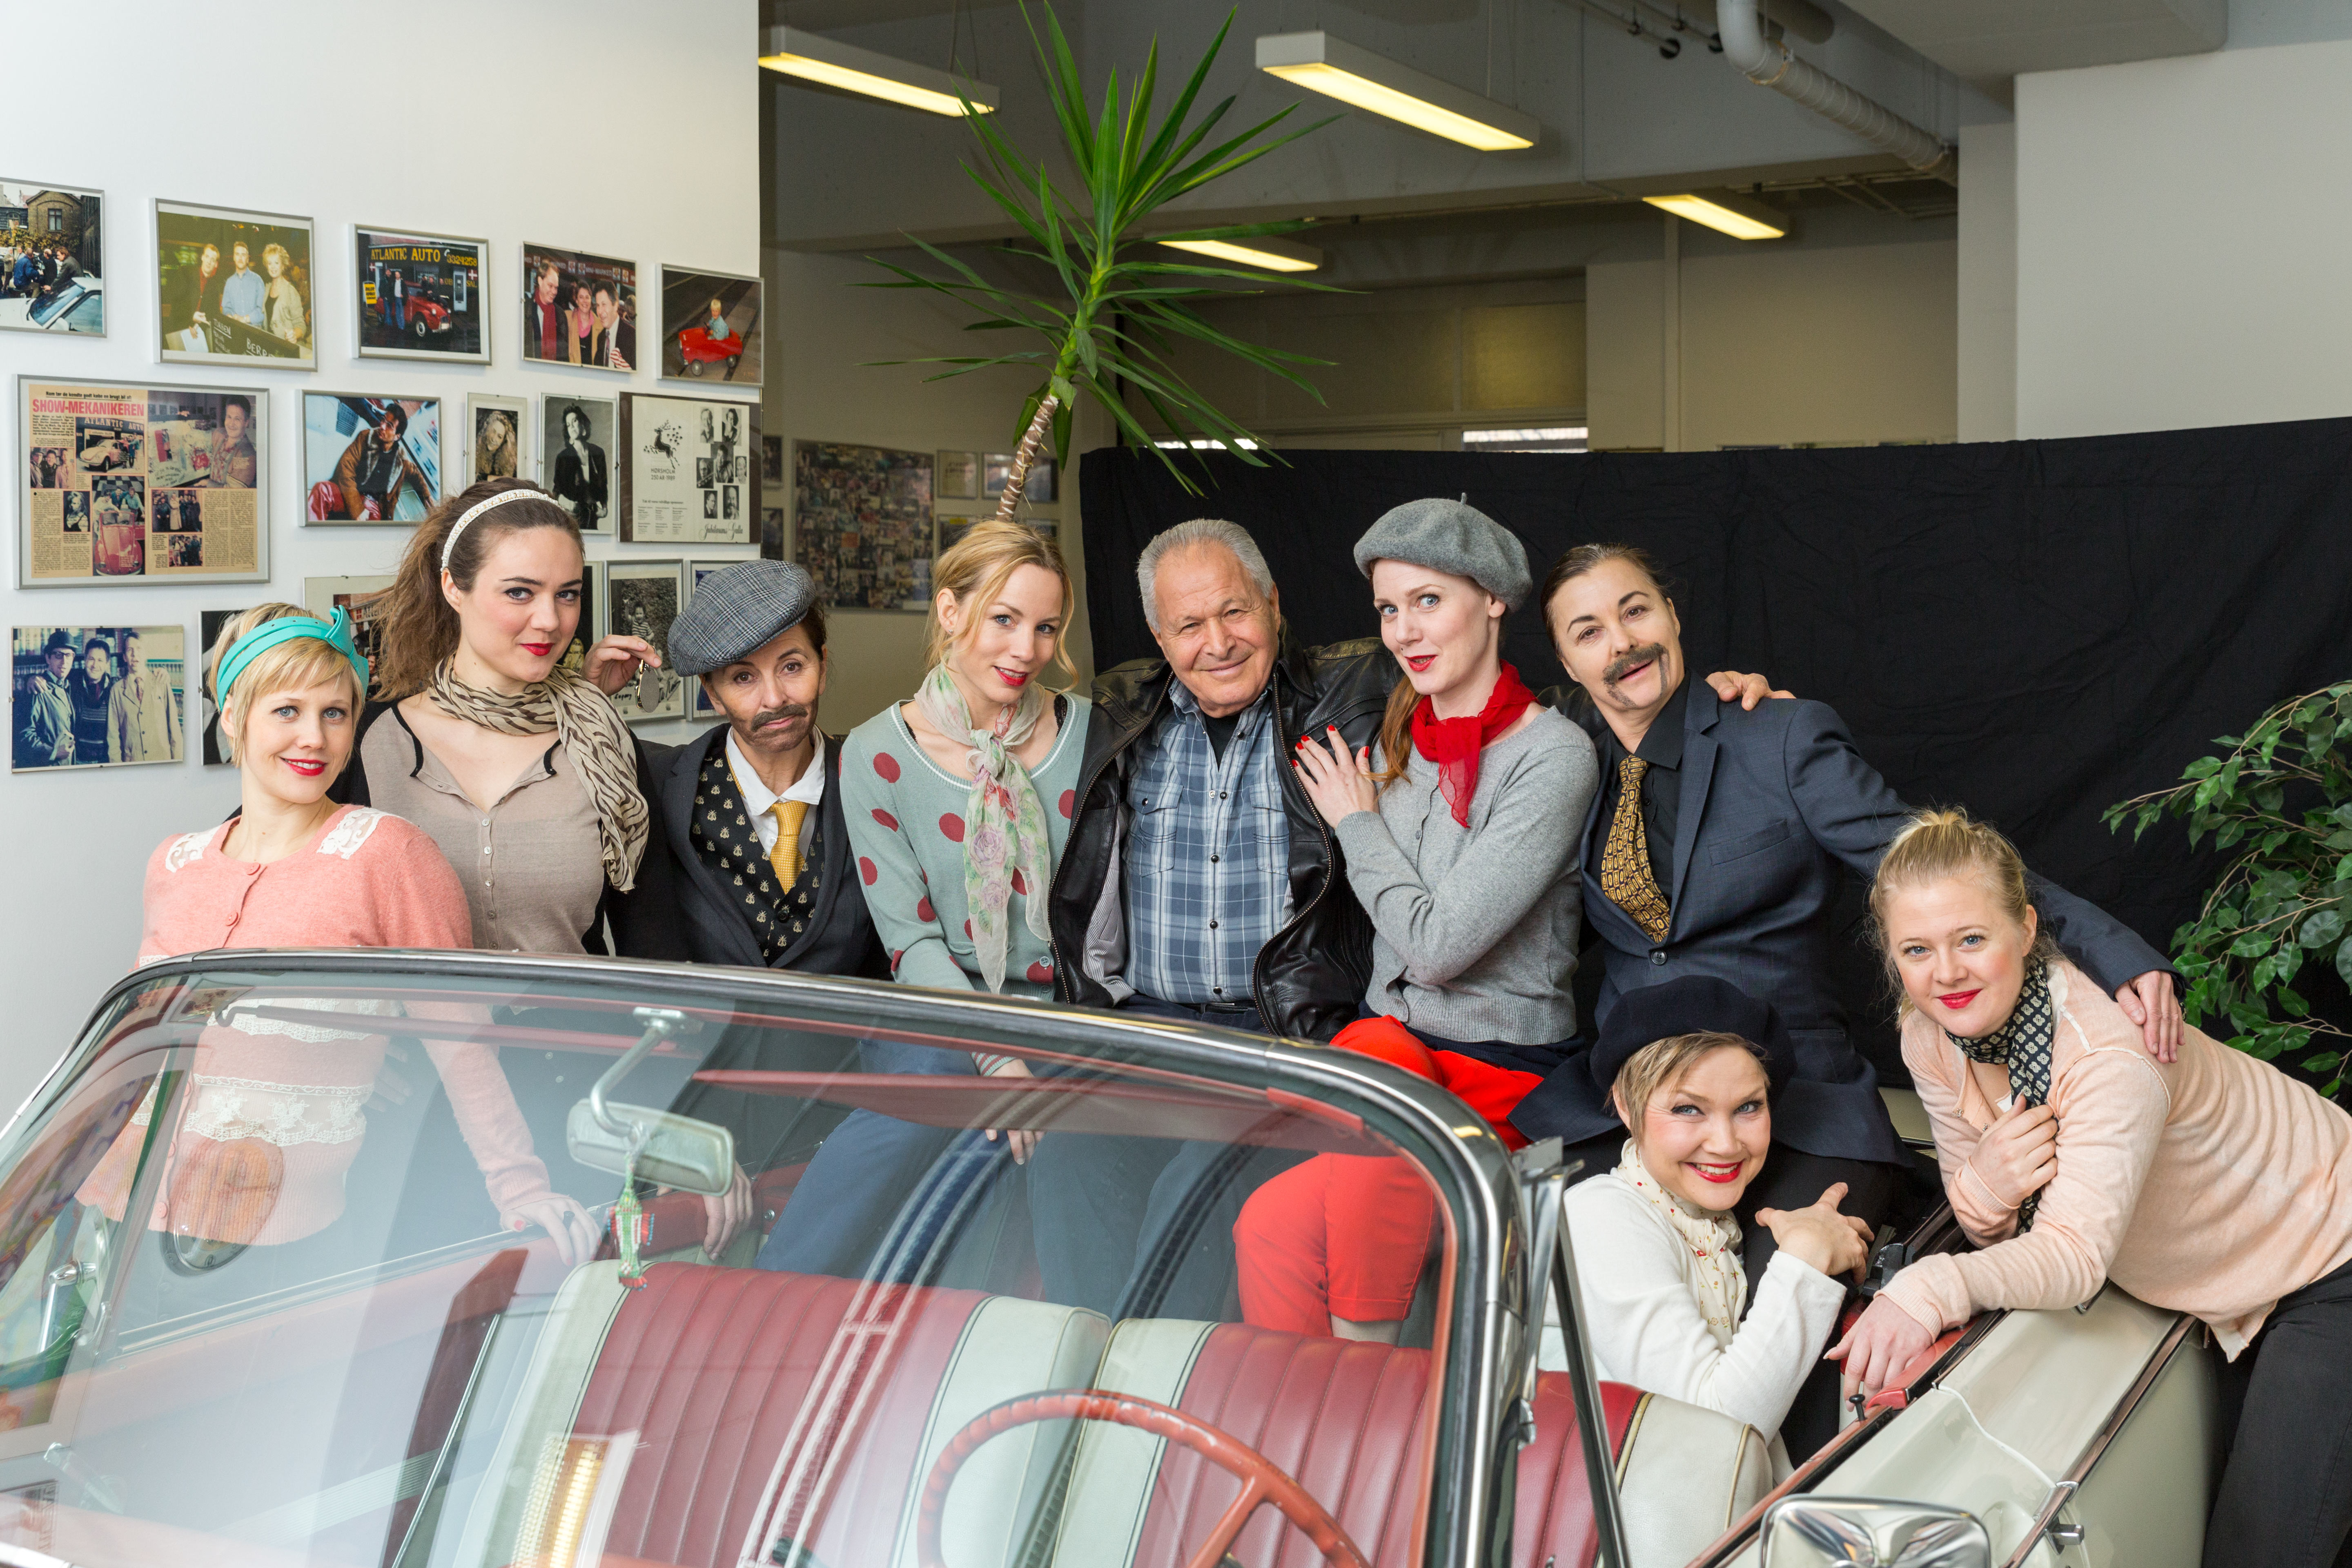 The man on the set: Meier. It is his beautiful vintage car. What could be better than 8 girls sitting in it?